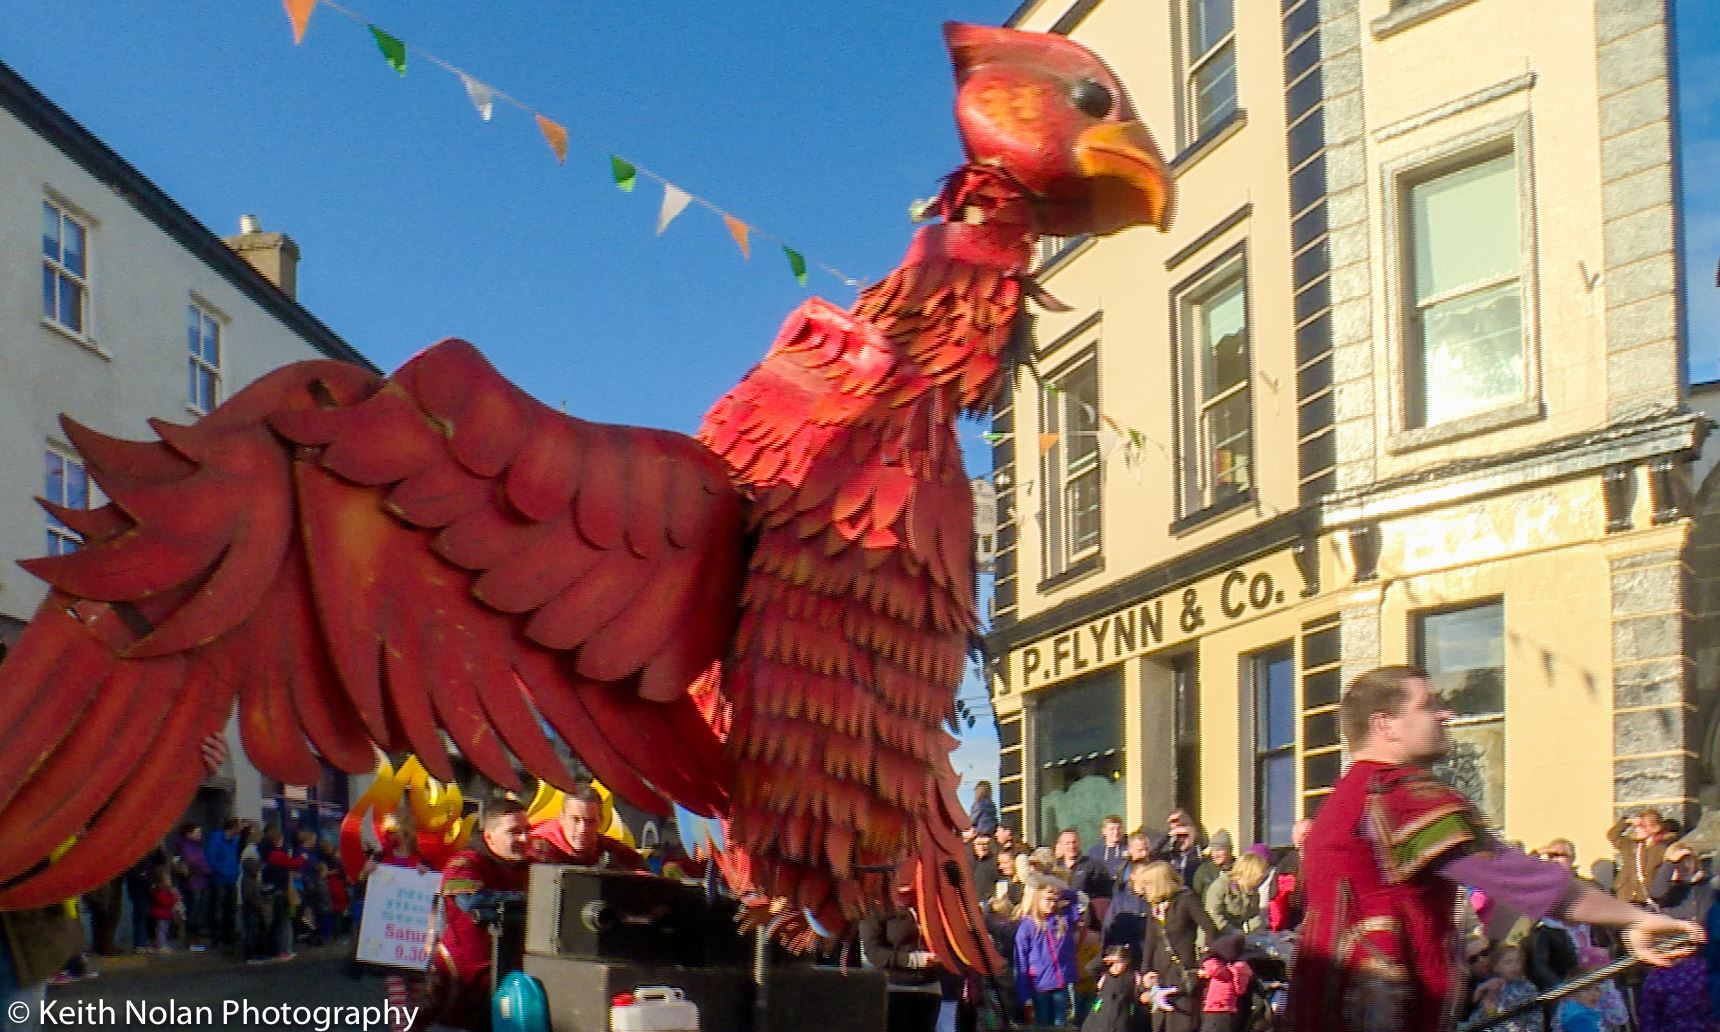 carrick carnival events happening in carrick on shannon throughout the year